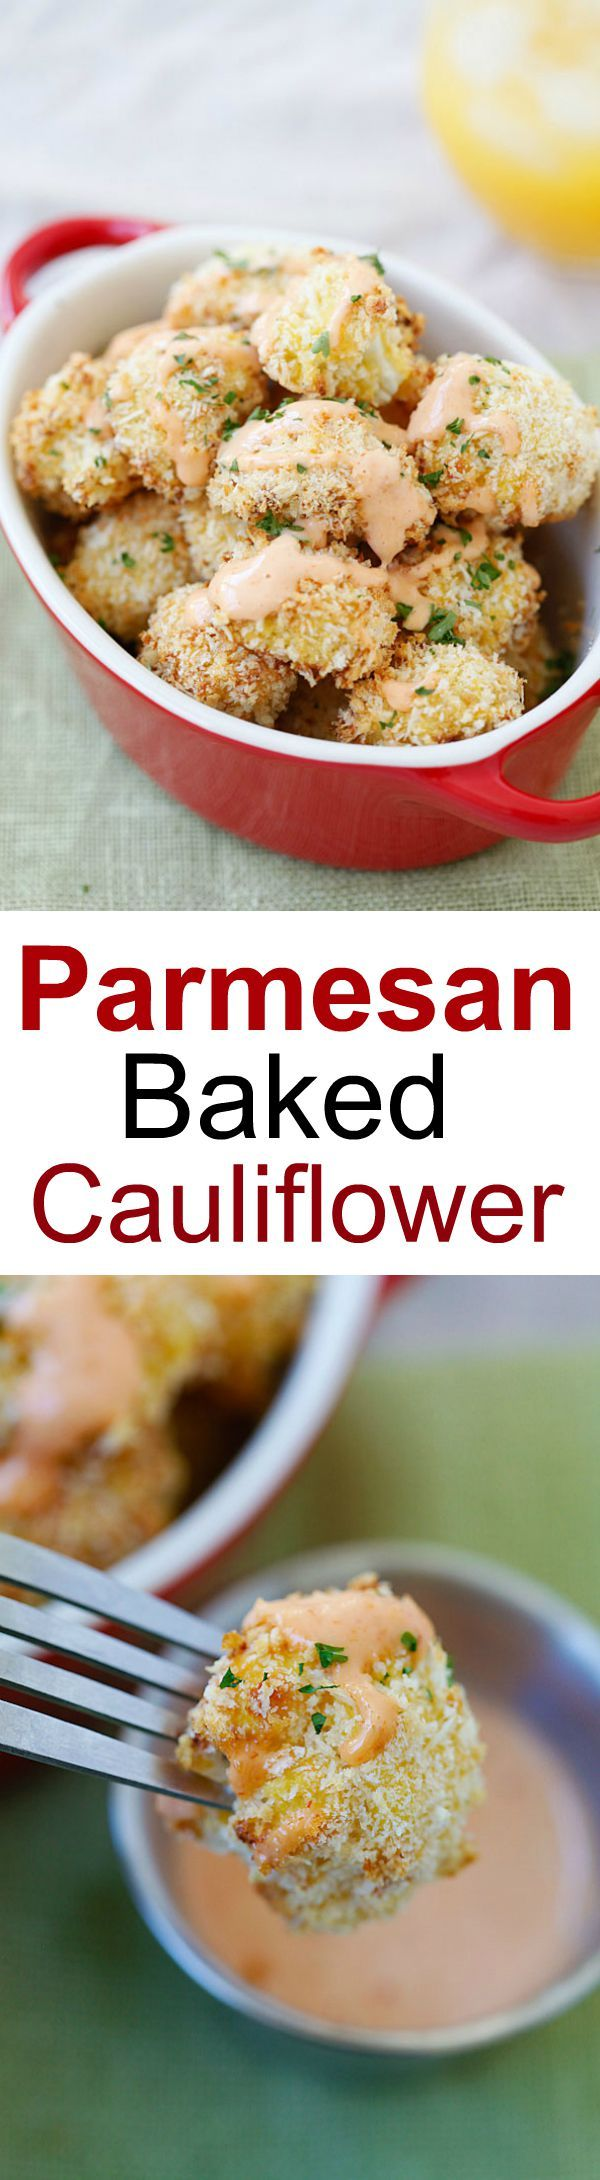 Parmesan Baked Cauliflower – crispy, healthy cauliflower coated with Parmesan cheese and panko bread crumbs. Easy, yummy and so good! | rasamalaysia.com